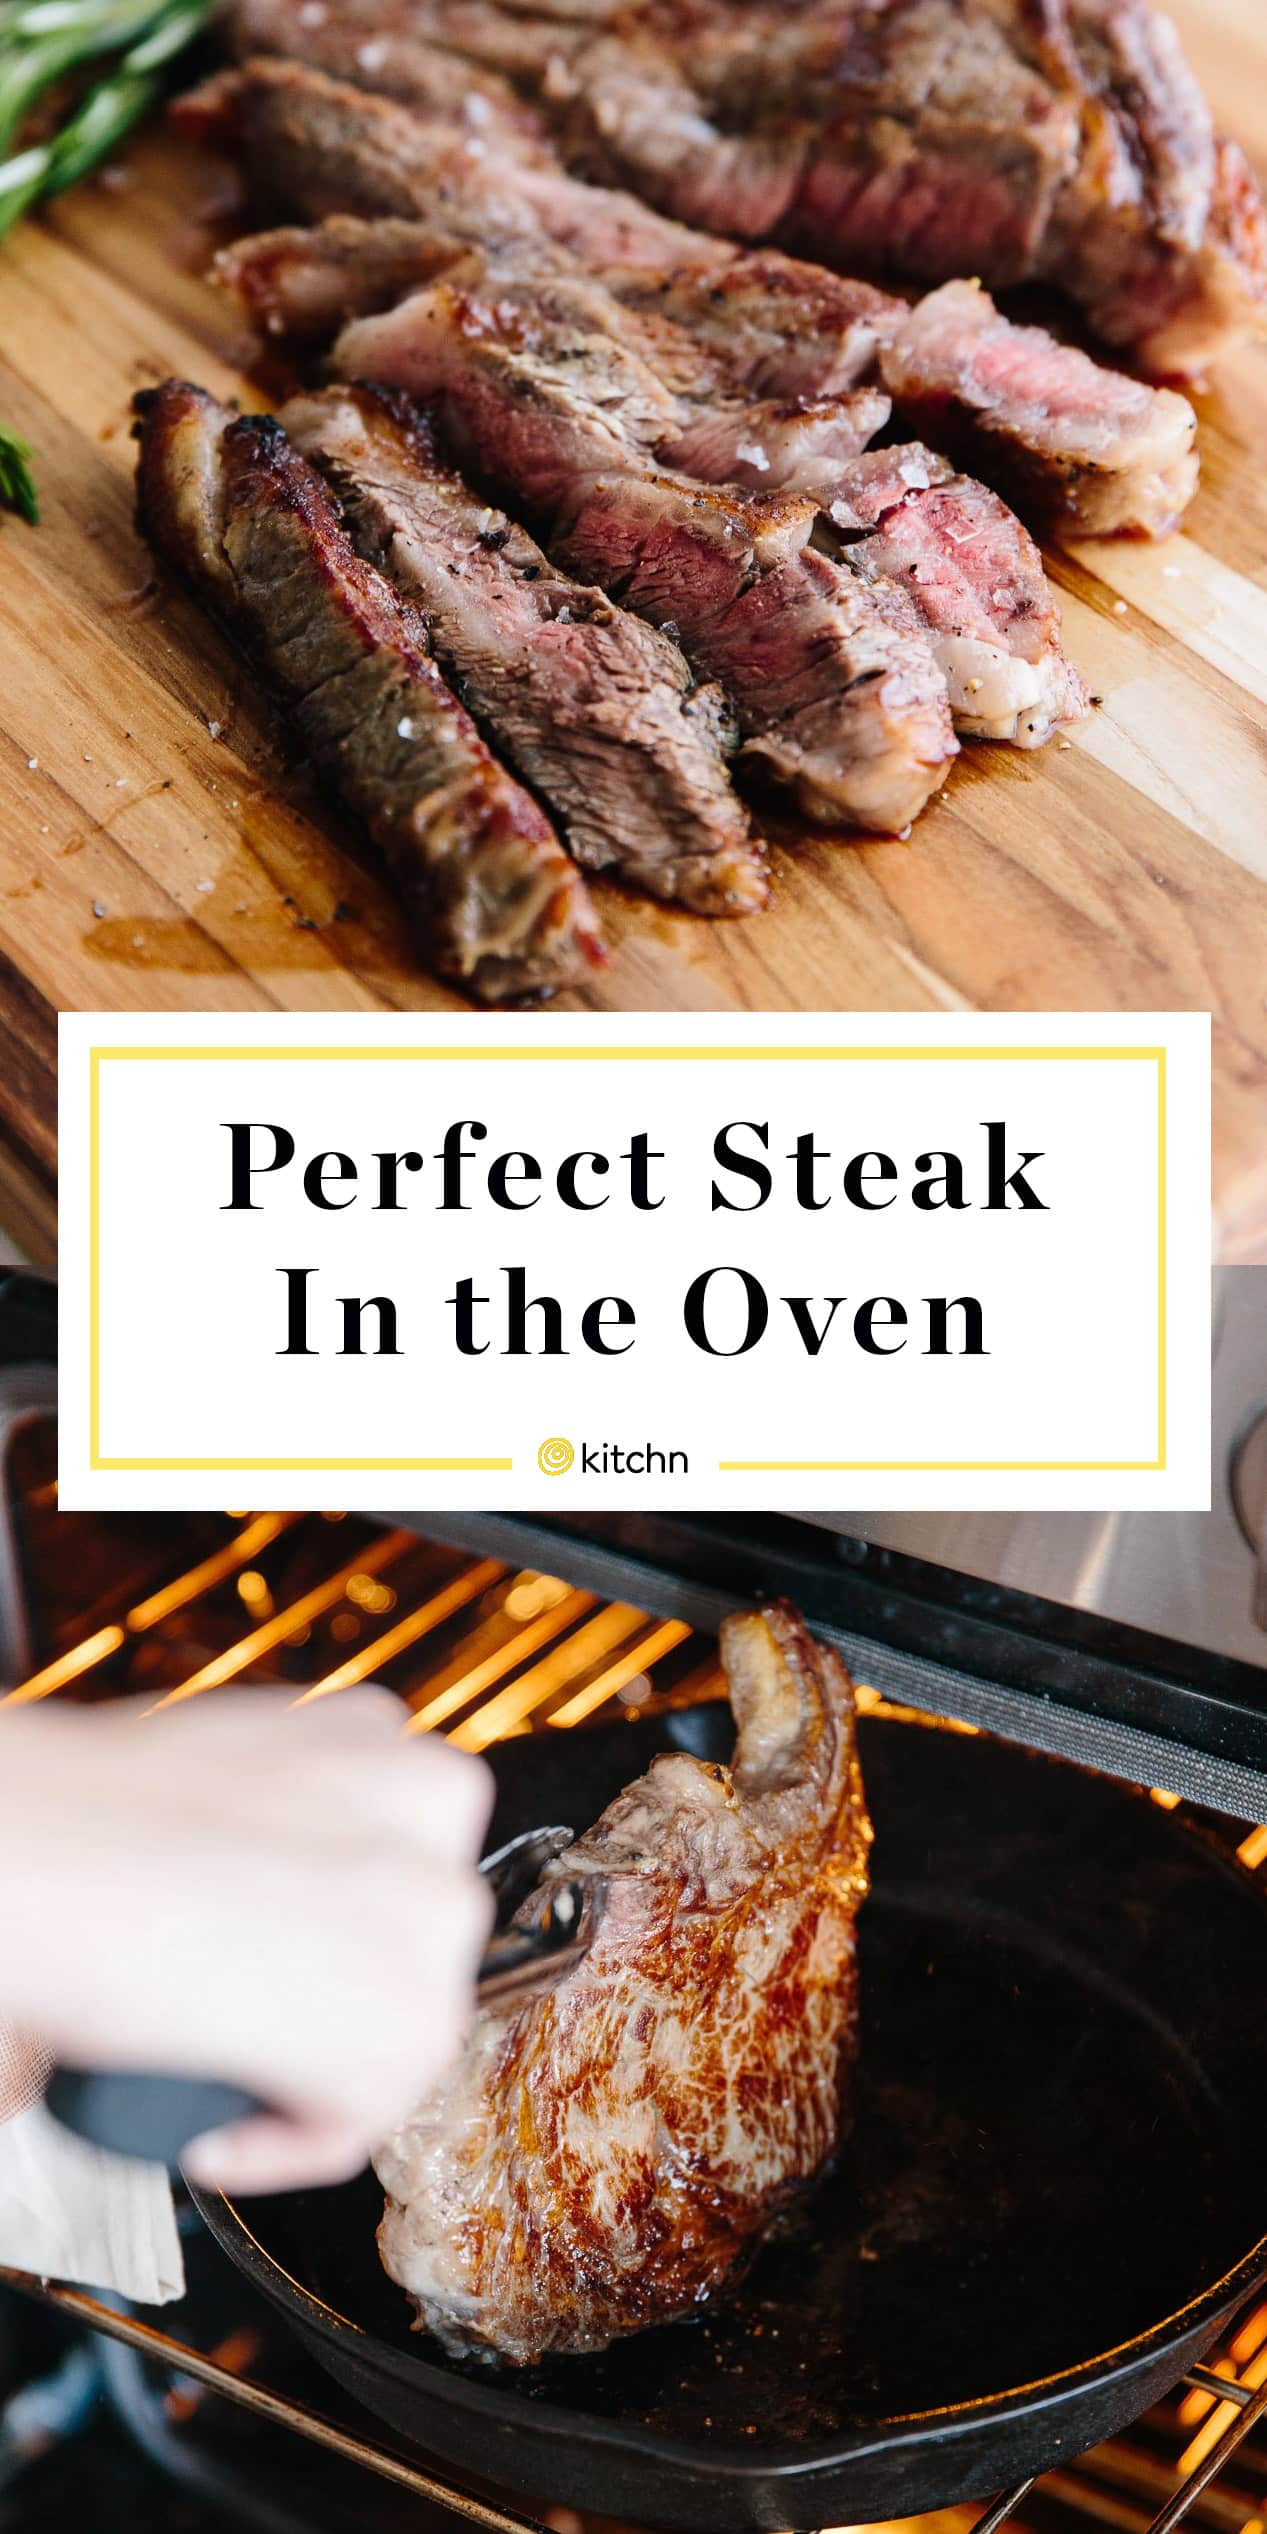 How To Cook Good Steak In Oven